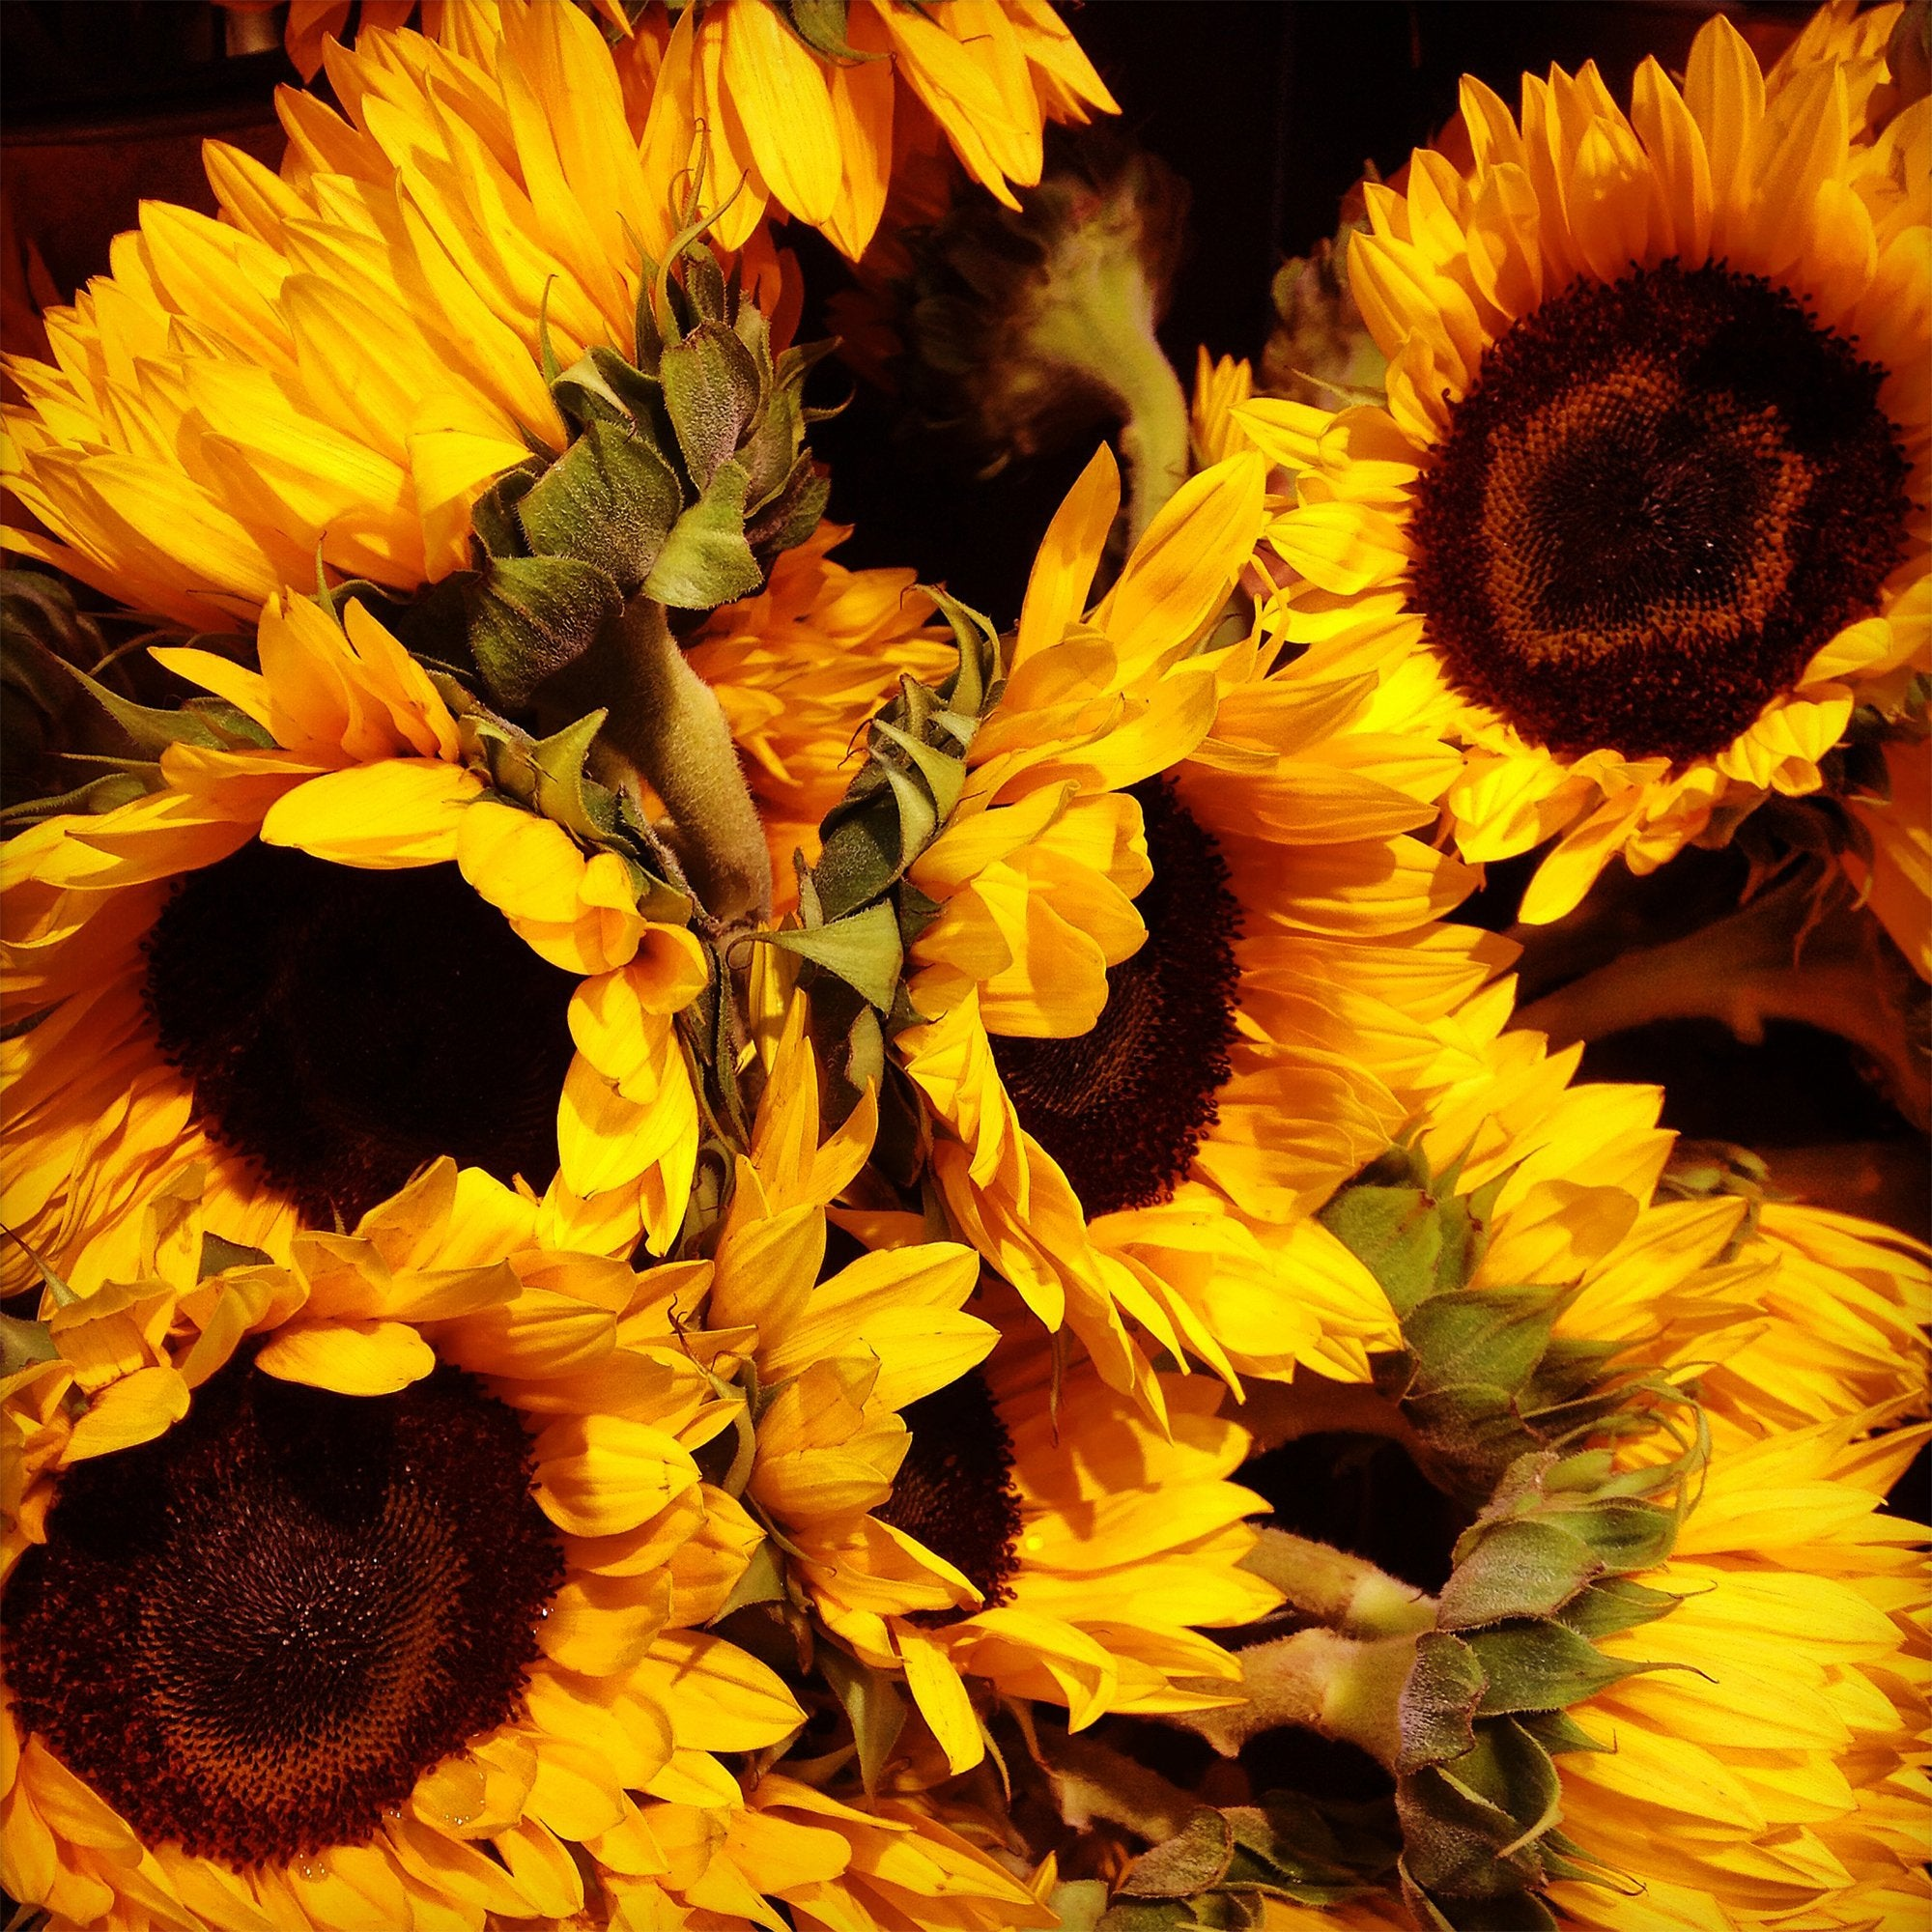 Bloom of the Week: Sunflower